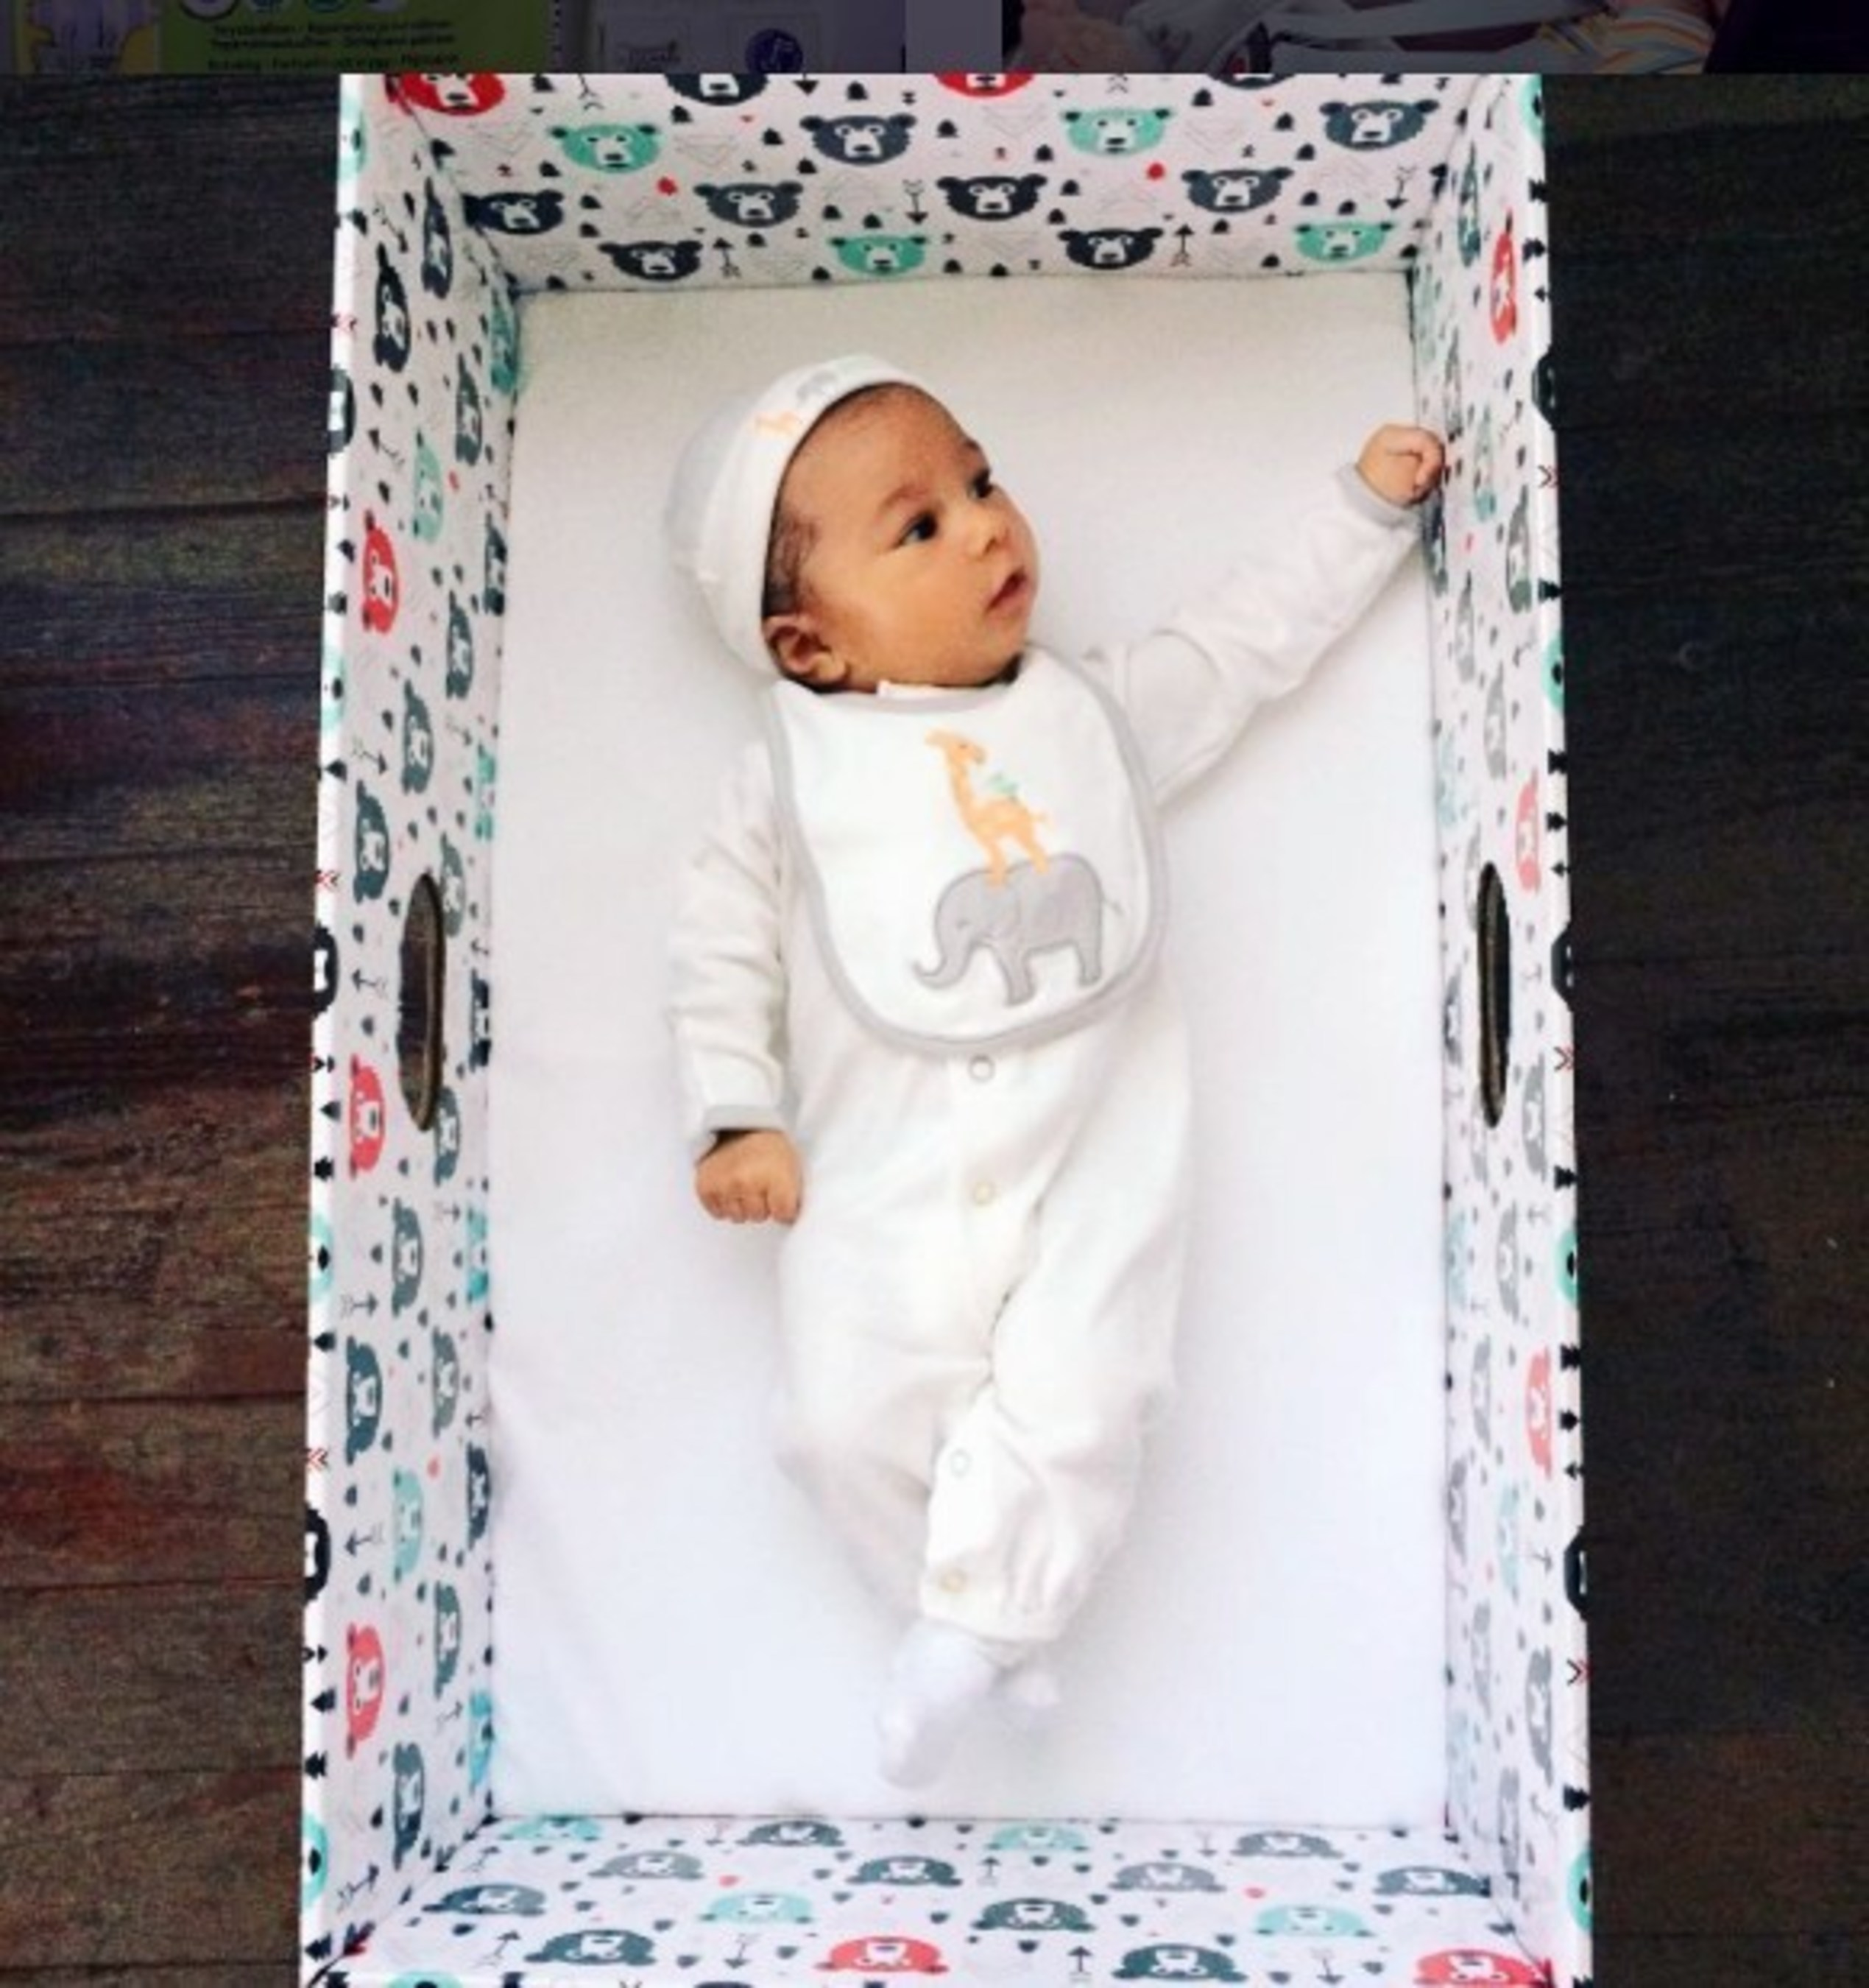 ontario province is launching a baby box program to provide safe